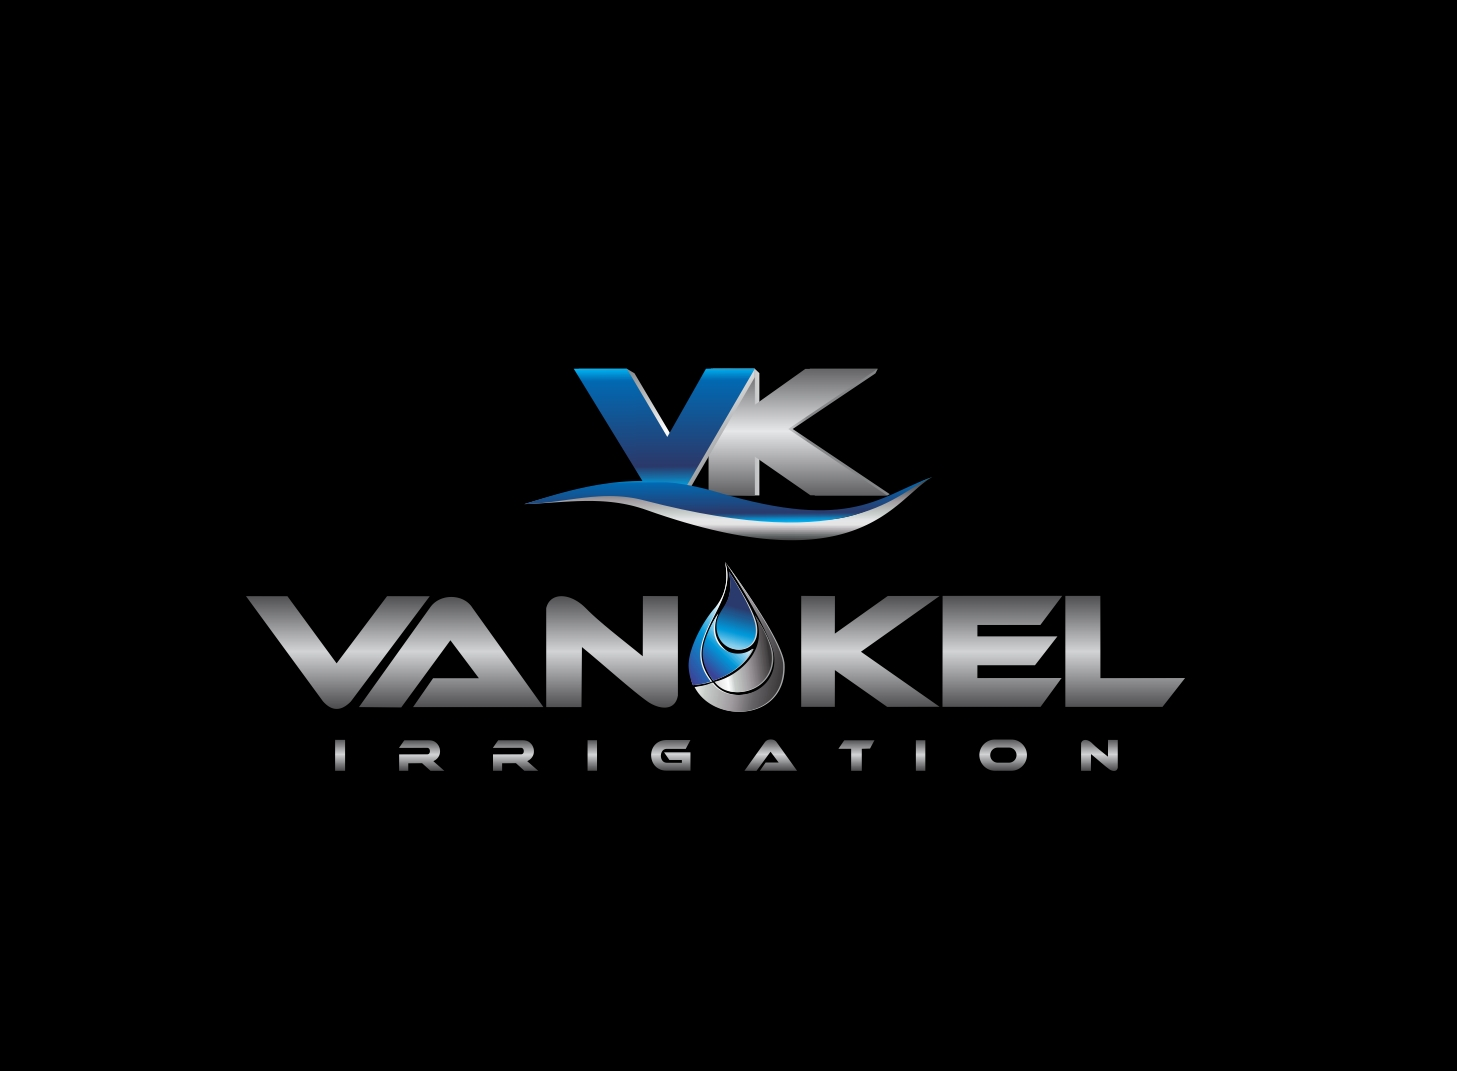 Logo Design by Zdravko Krulj - Entry No. 360 in the Logo Design Contest Van-Kel Irrigation Logo Design.